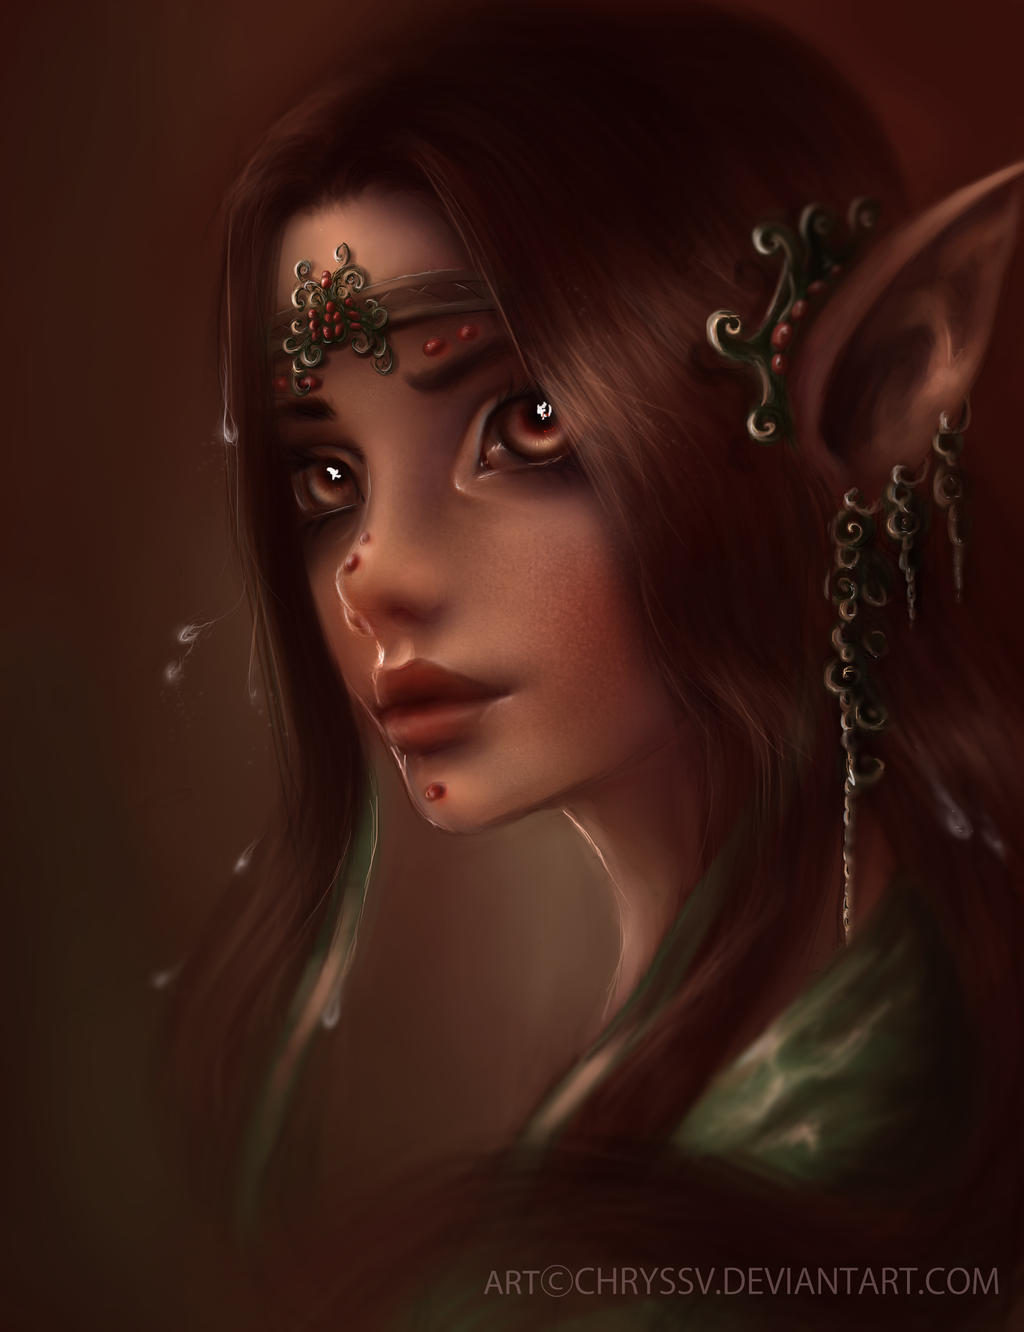 Wood Elf By Chryssv On Deviantart